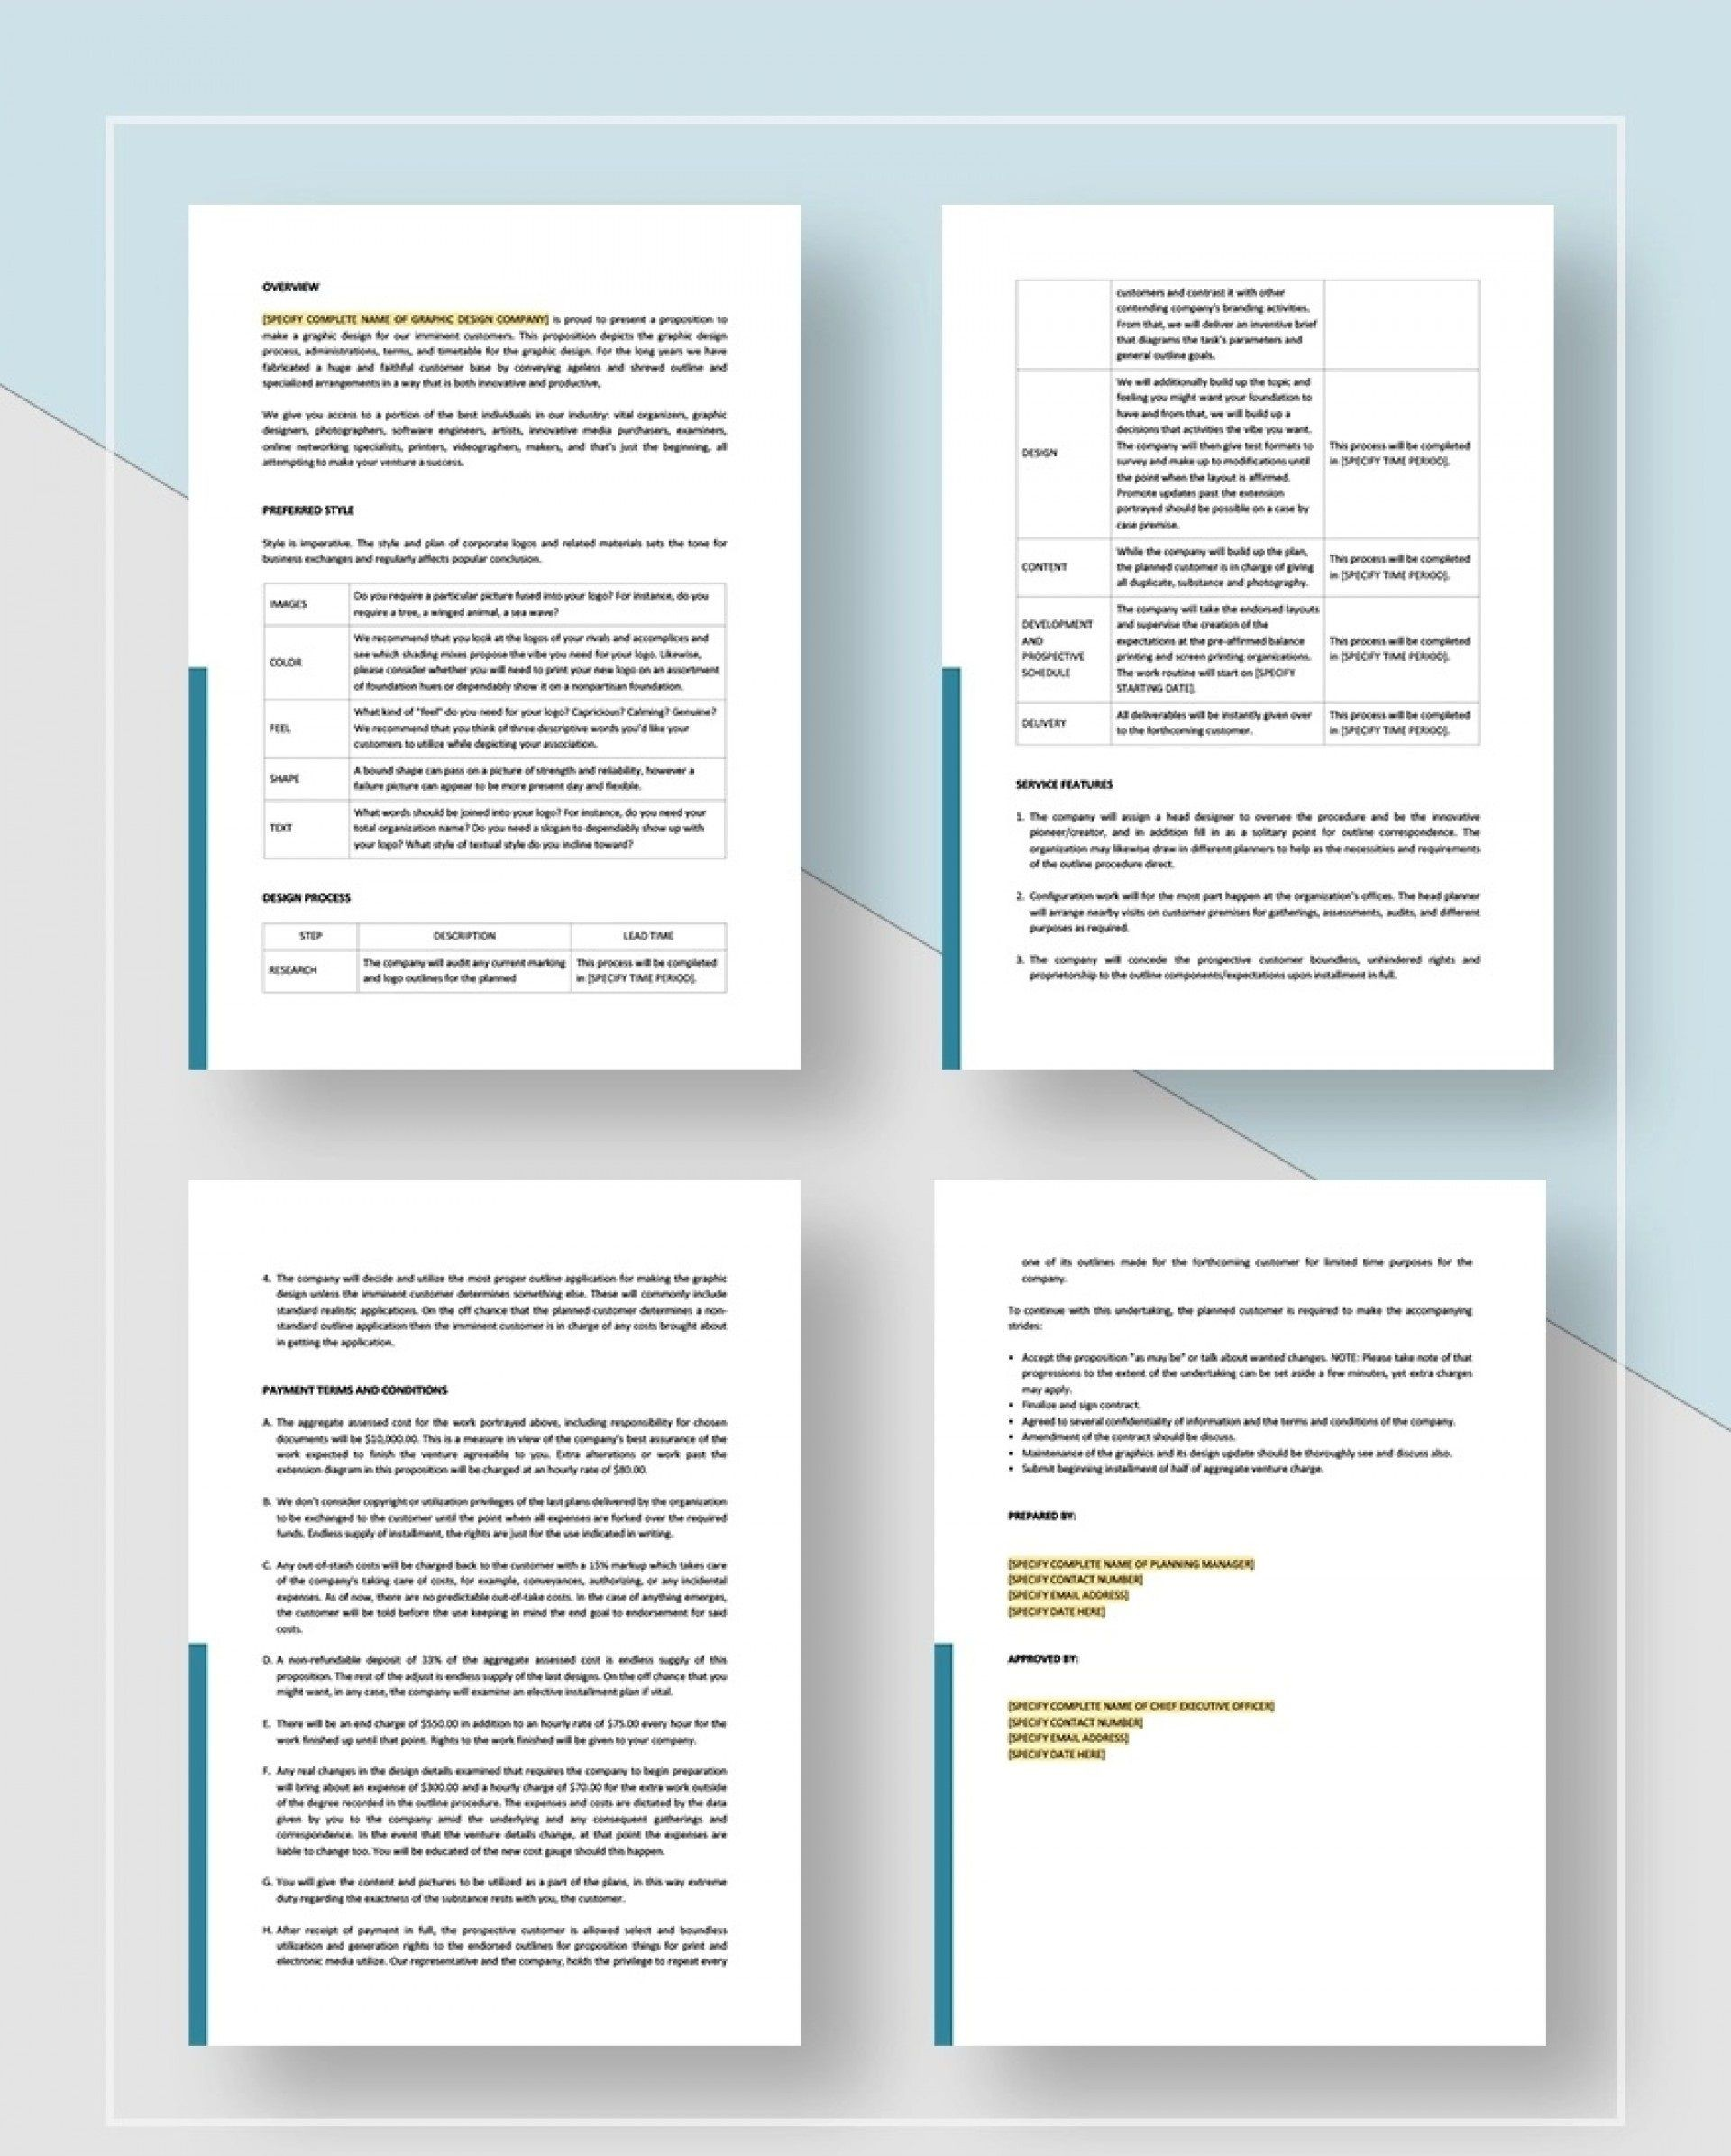 008 Excellent Graphic Design Proposal Sample High Definition  Pdf Free Template Indesign1920